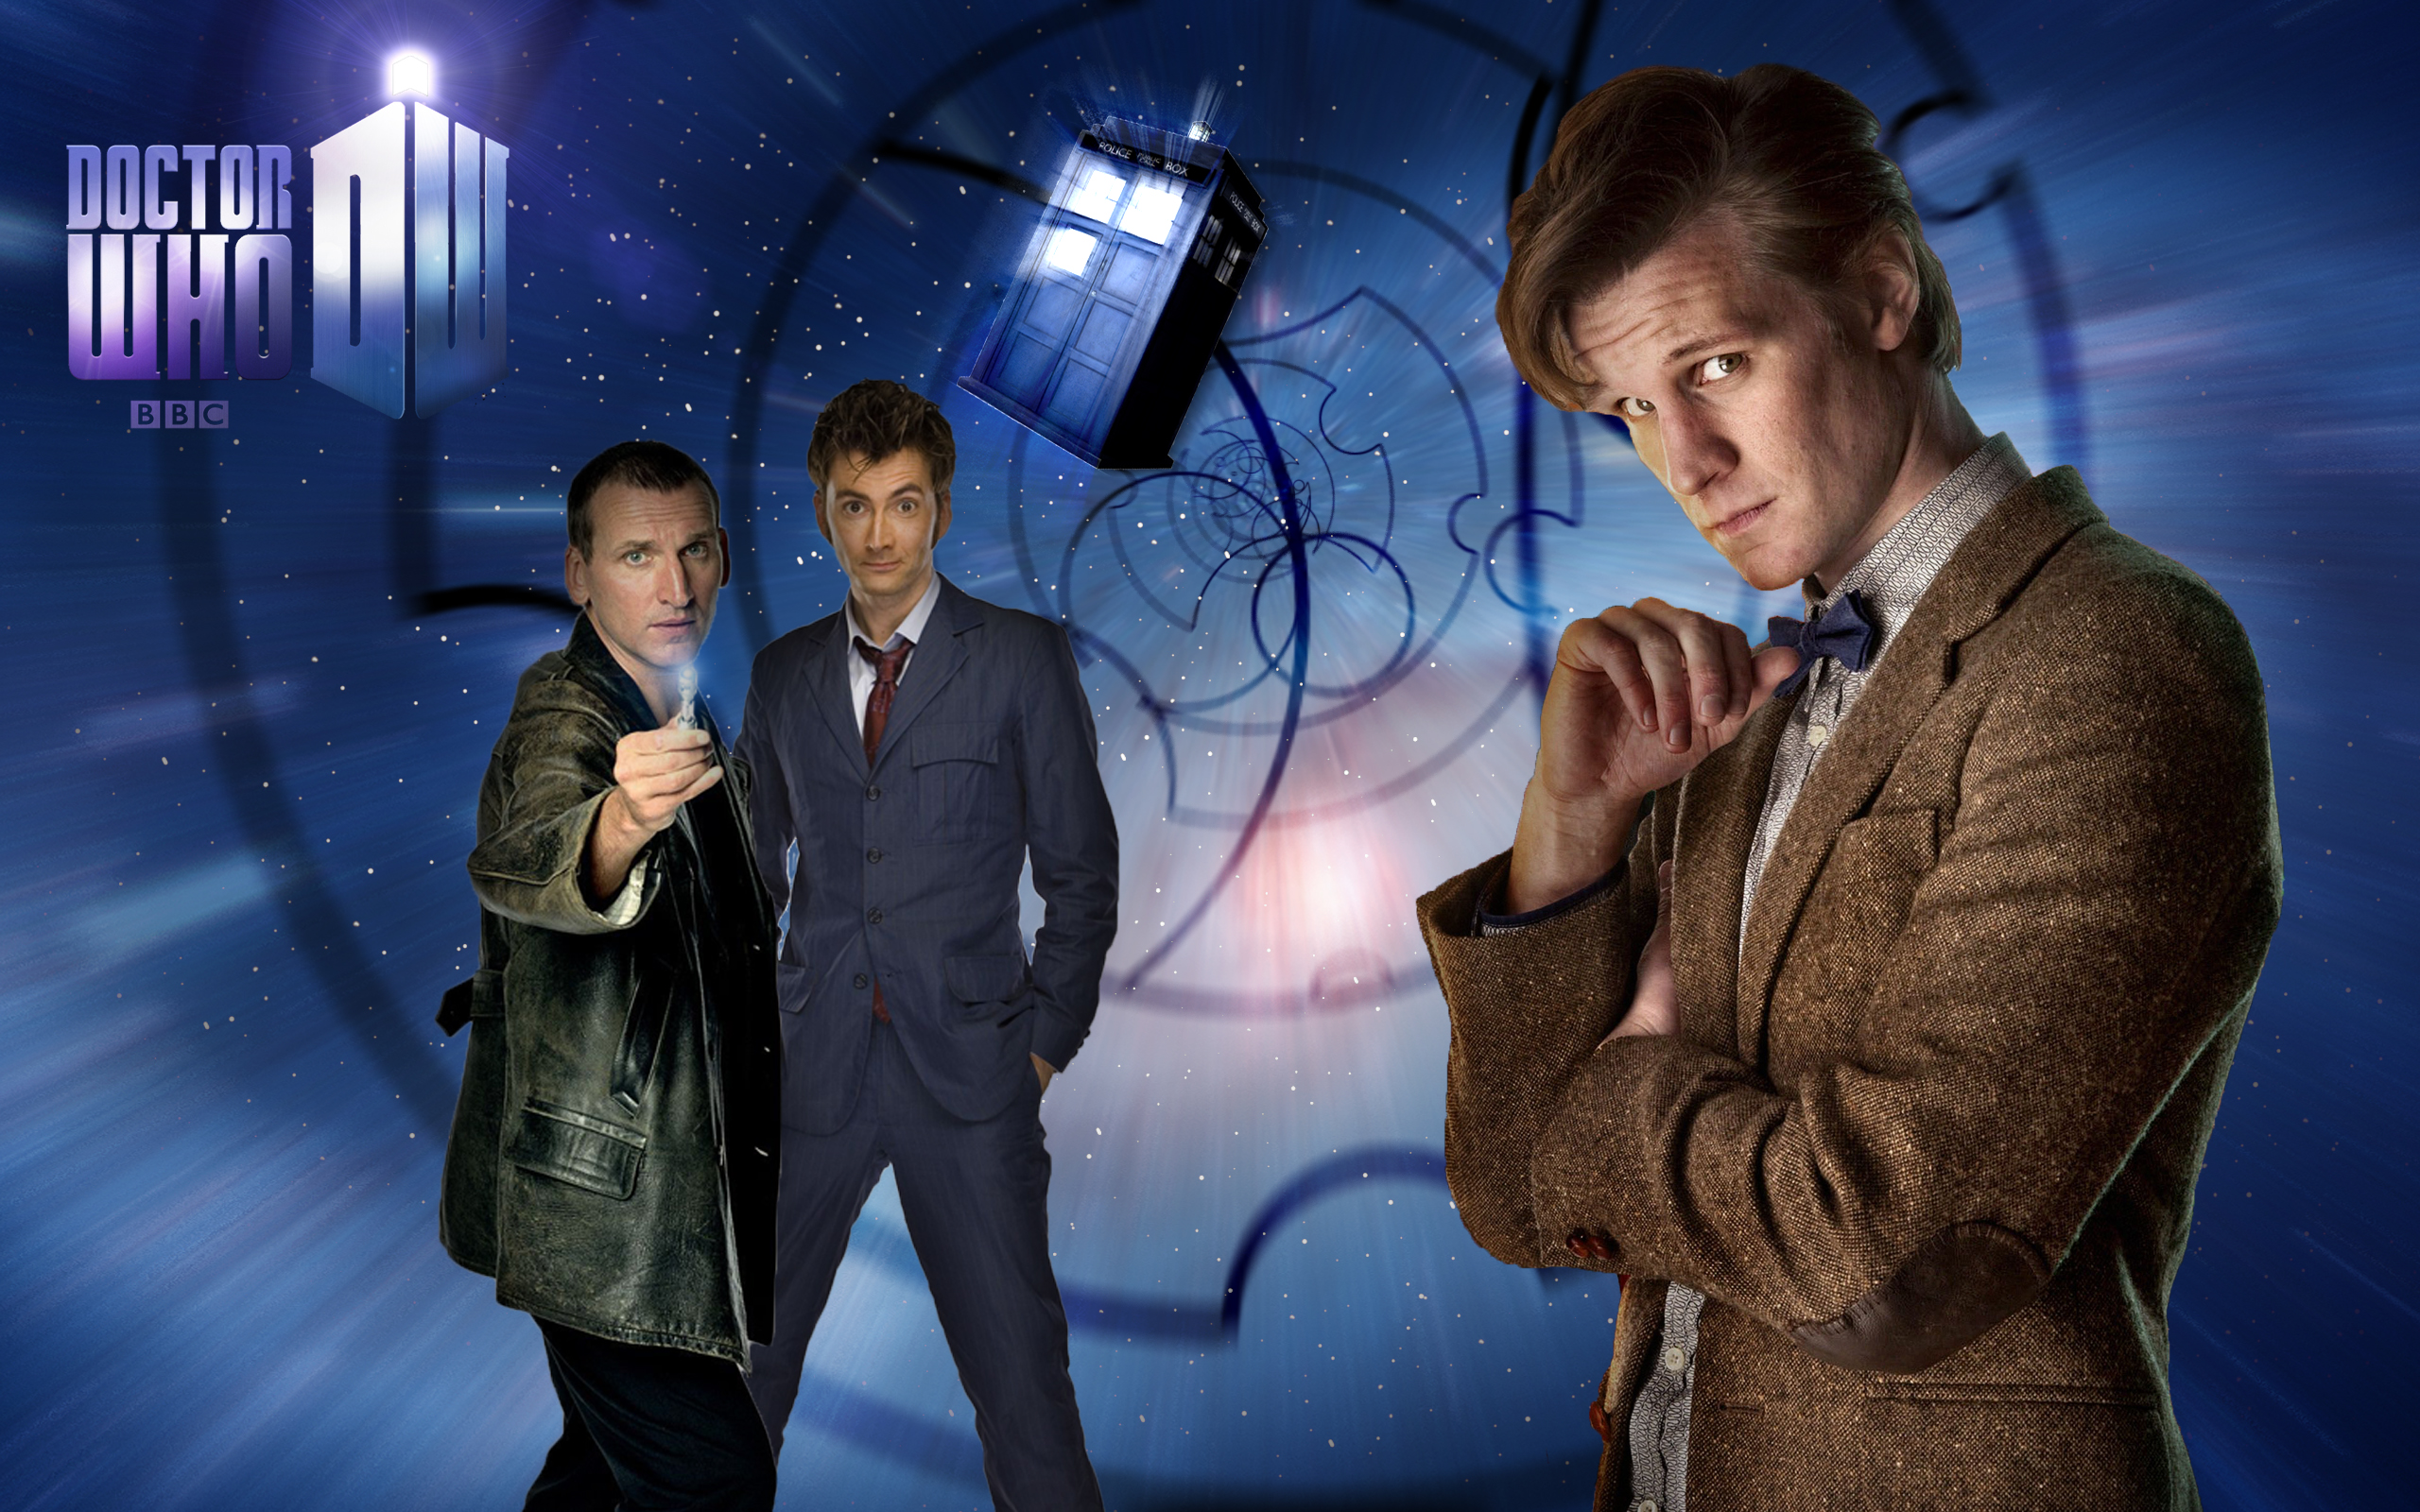 wallpapers of Doctor Who You are downloading Doctor Who wallpaper 4 2560x1600